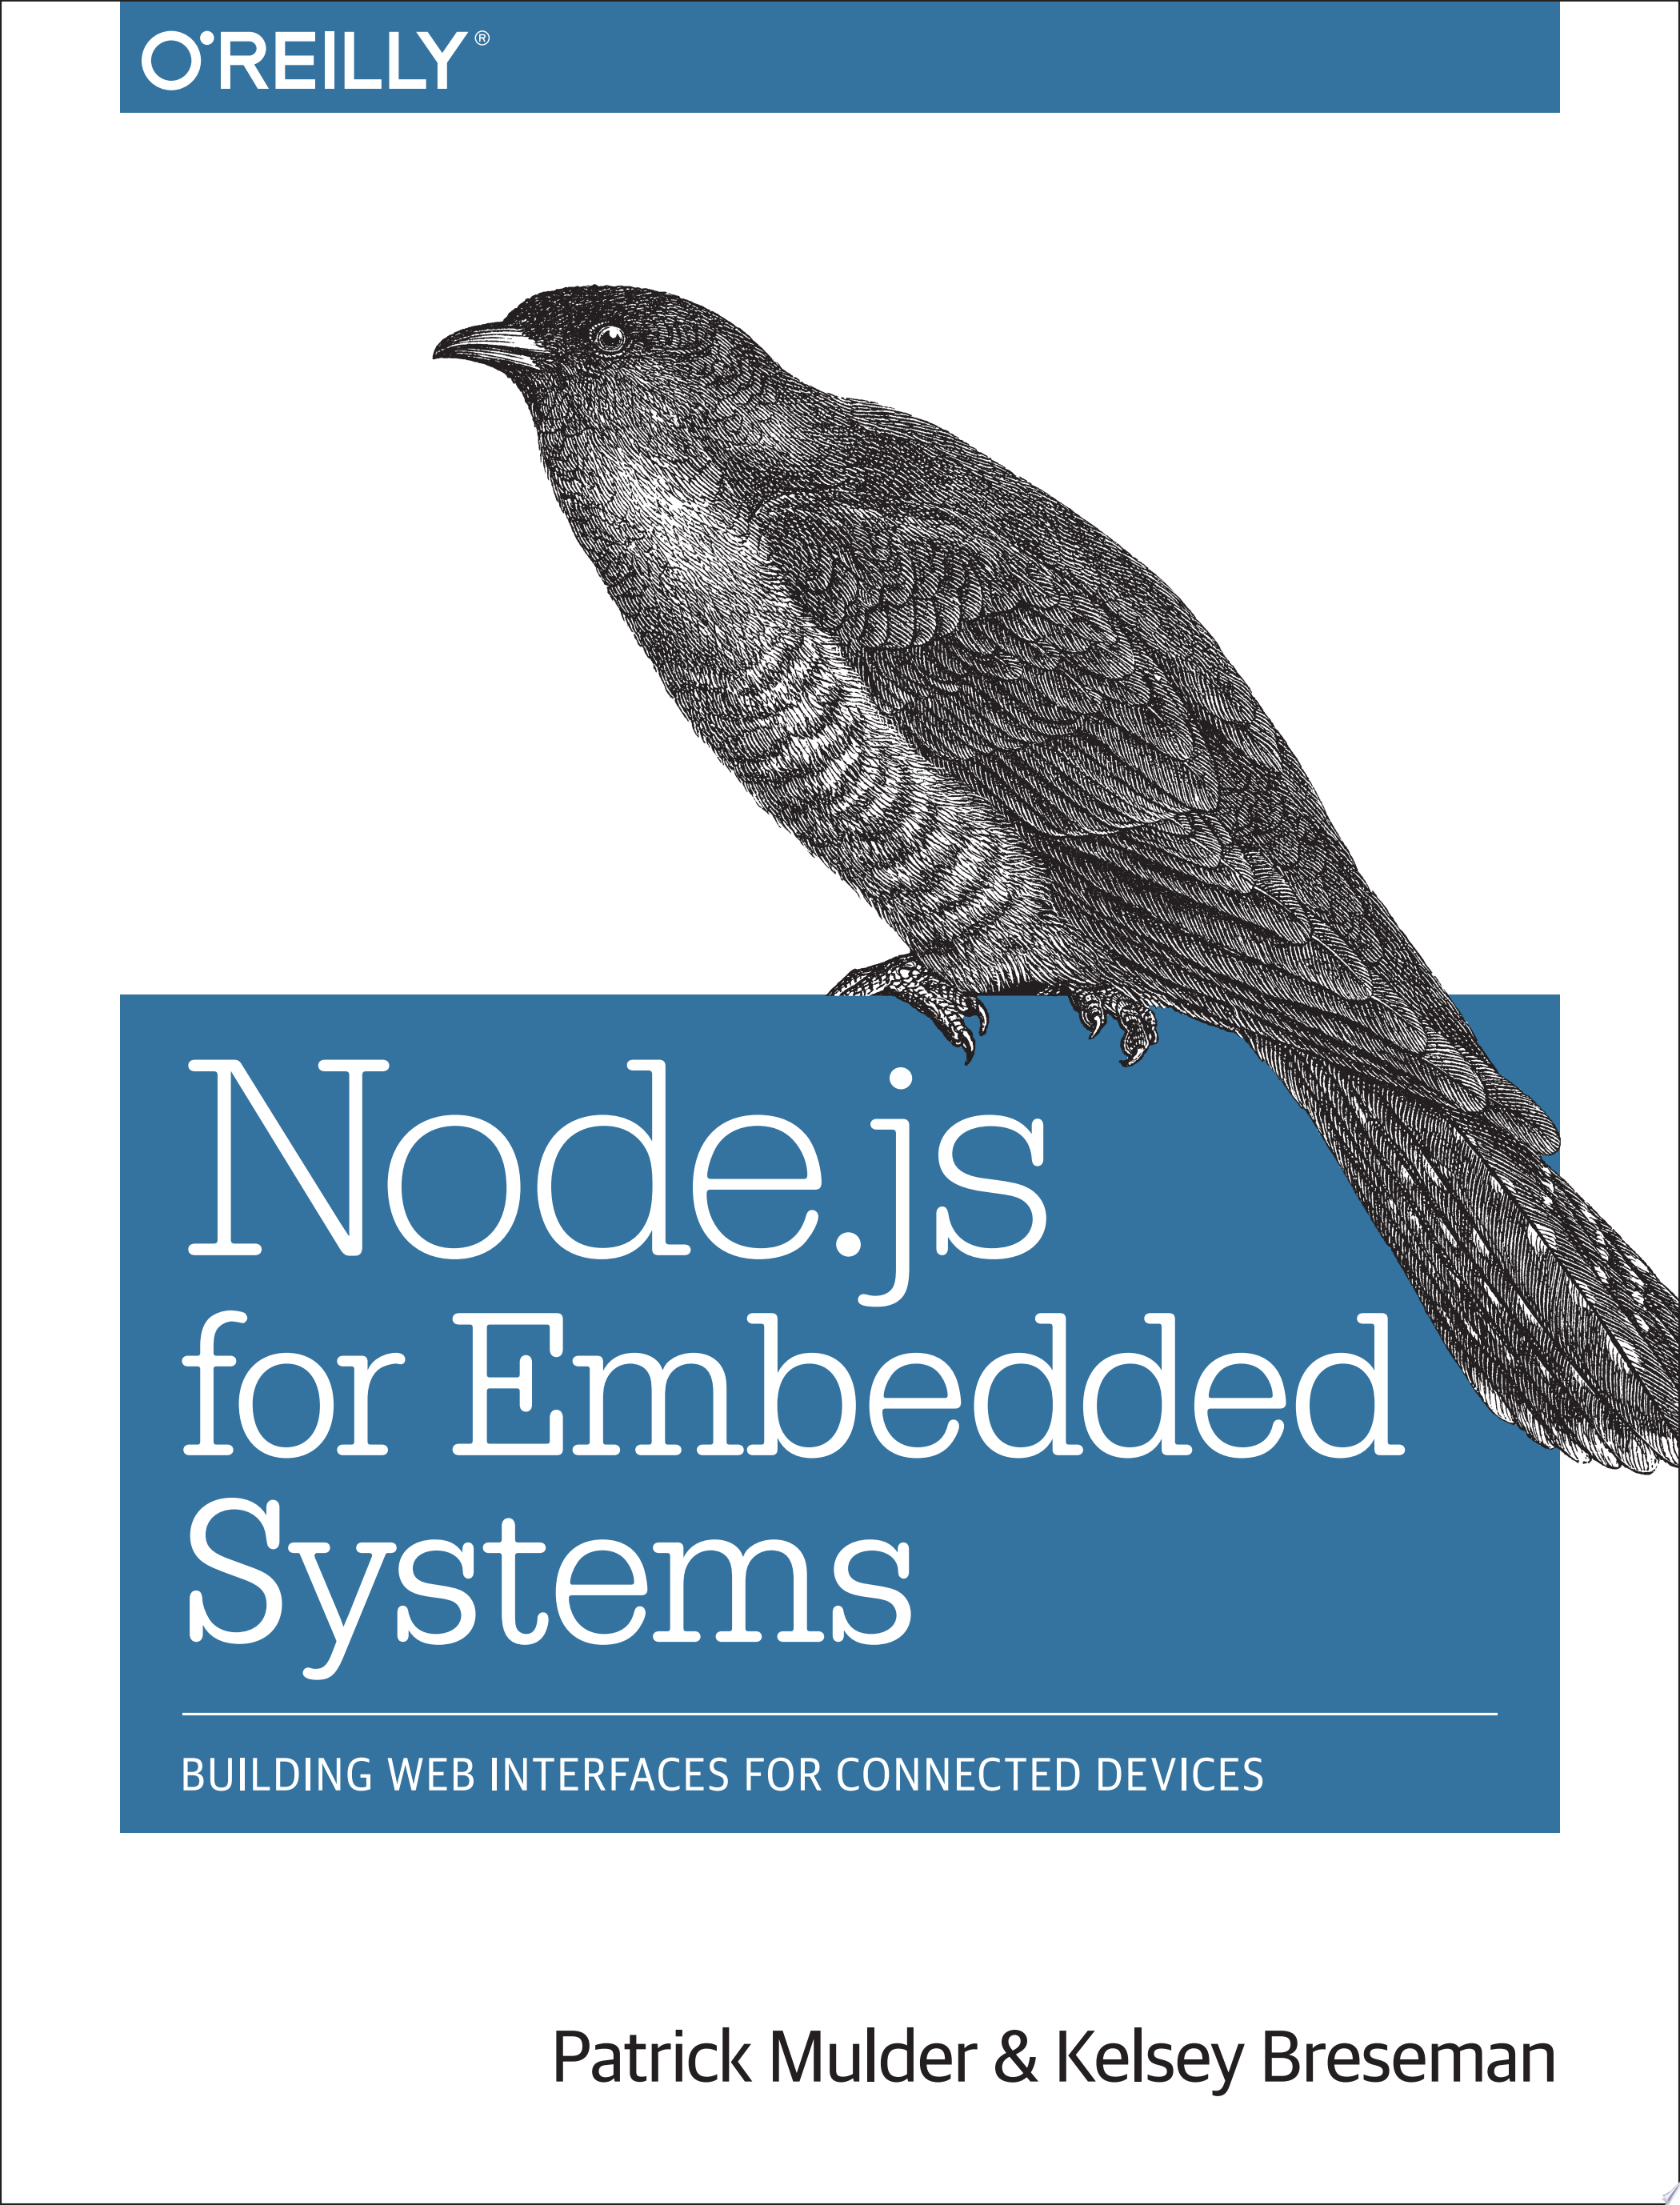 Node js for Embedded Systems